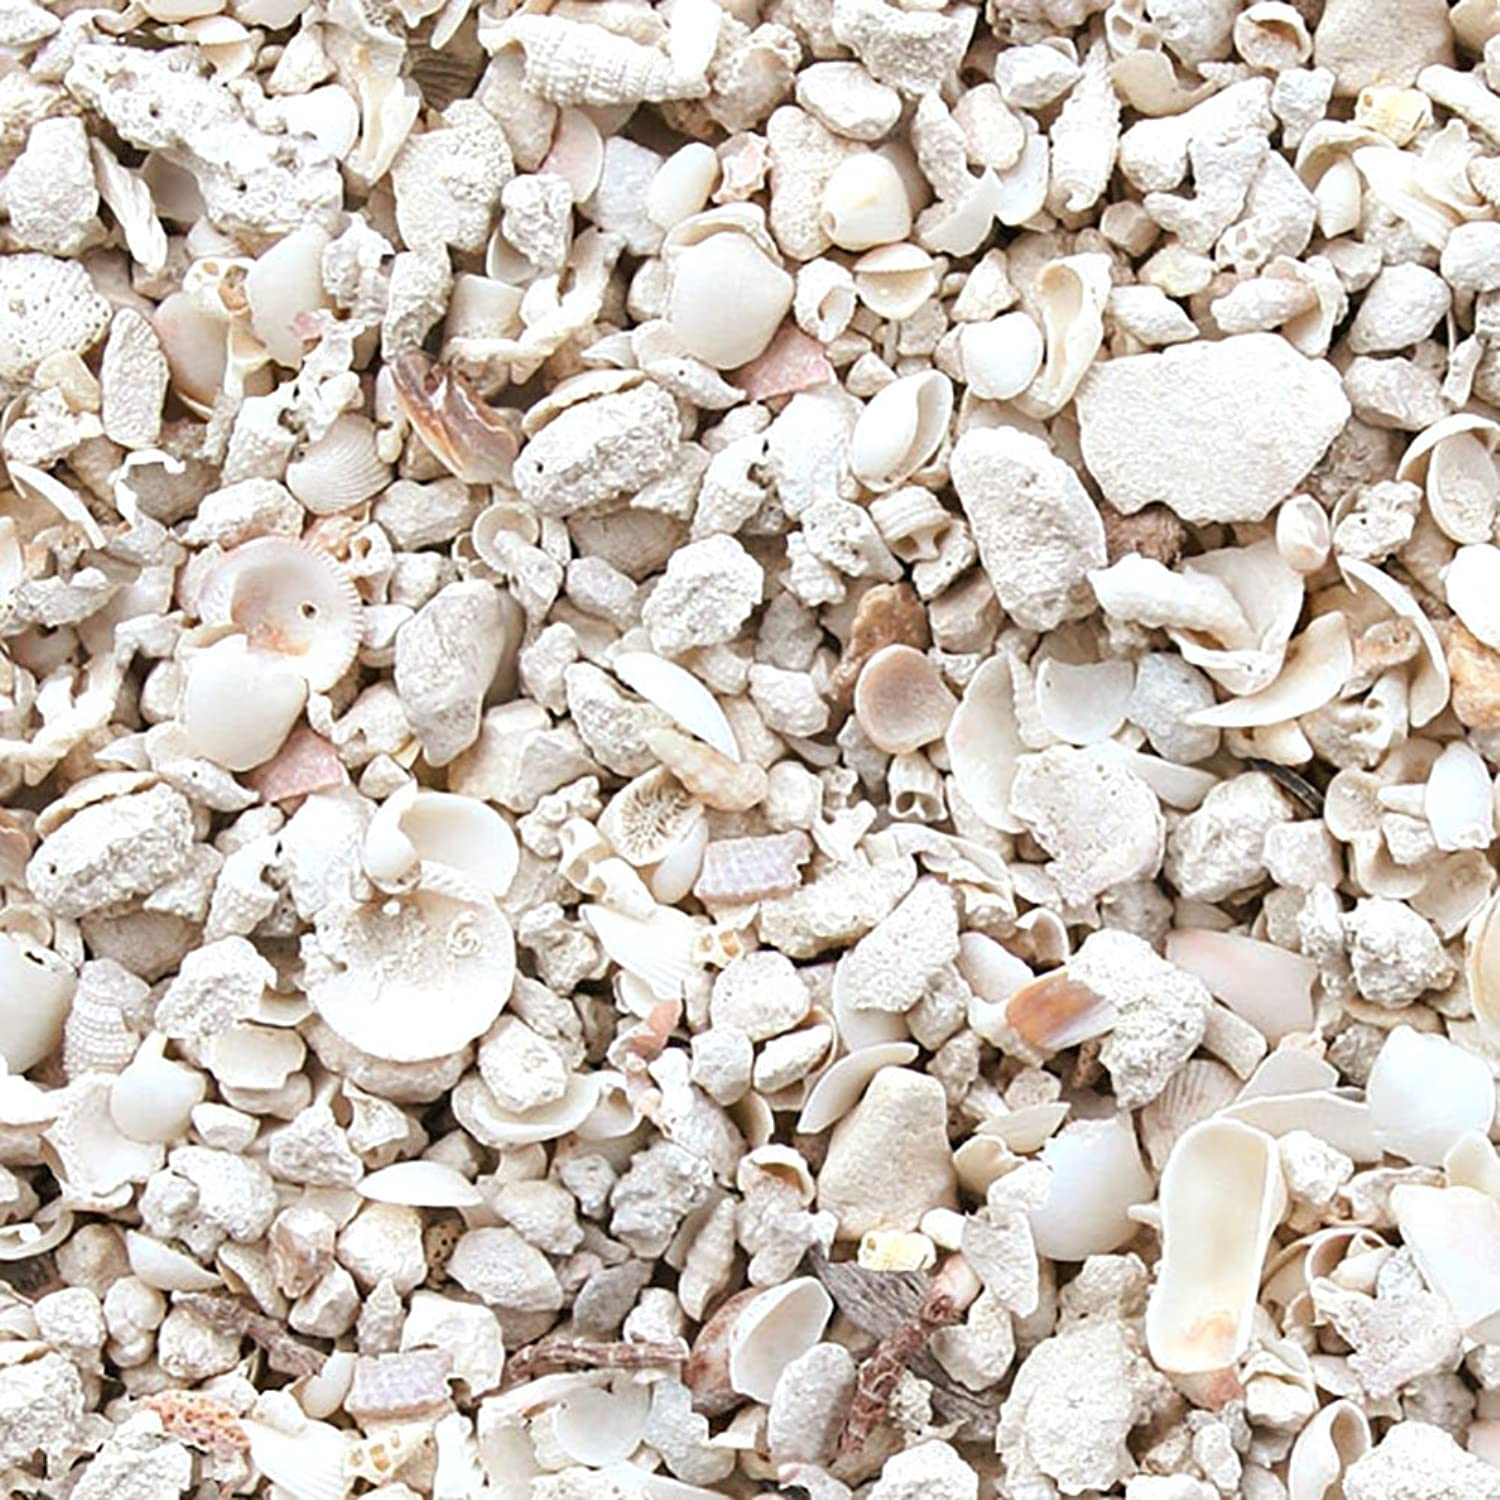 Safe & NonToxic {Standard Size, 0.33  to 0.5 Inch} 20 Pound Bag of Gravel, Rocks & Pebbles Decor Made of Genuine Coral for Freshwater & Saltwater Aquarium w  Unique Beneficial Seashell Style [Tan]